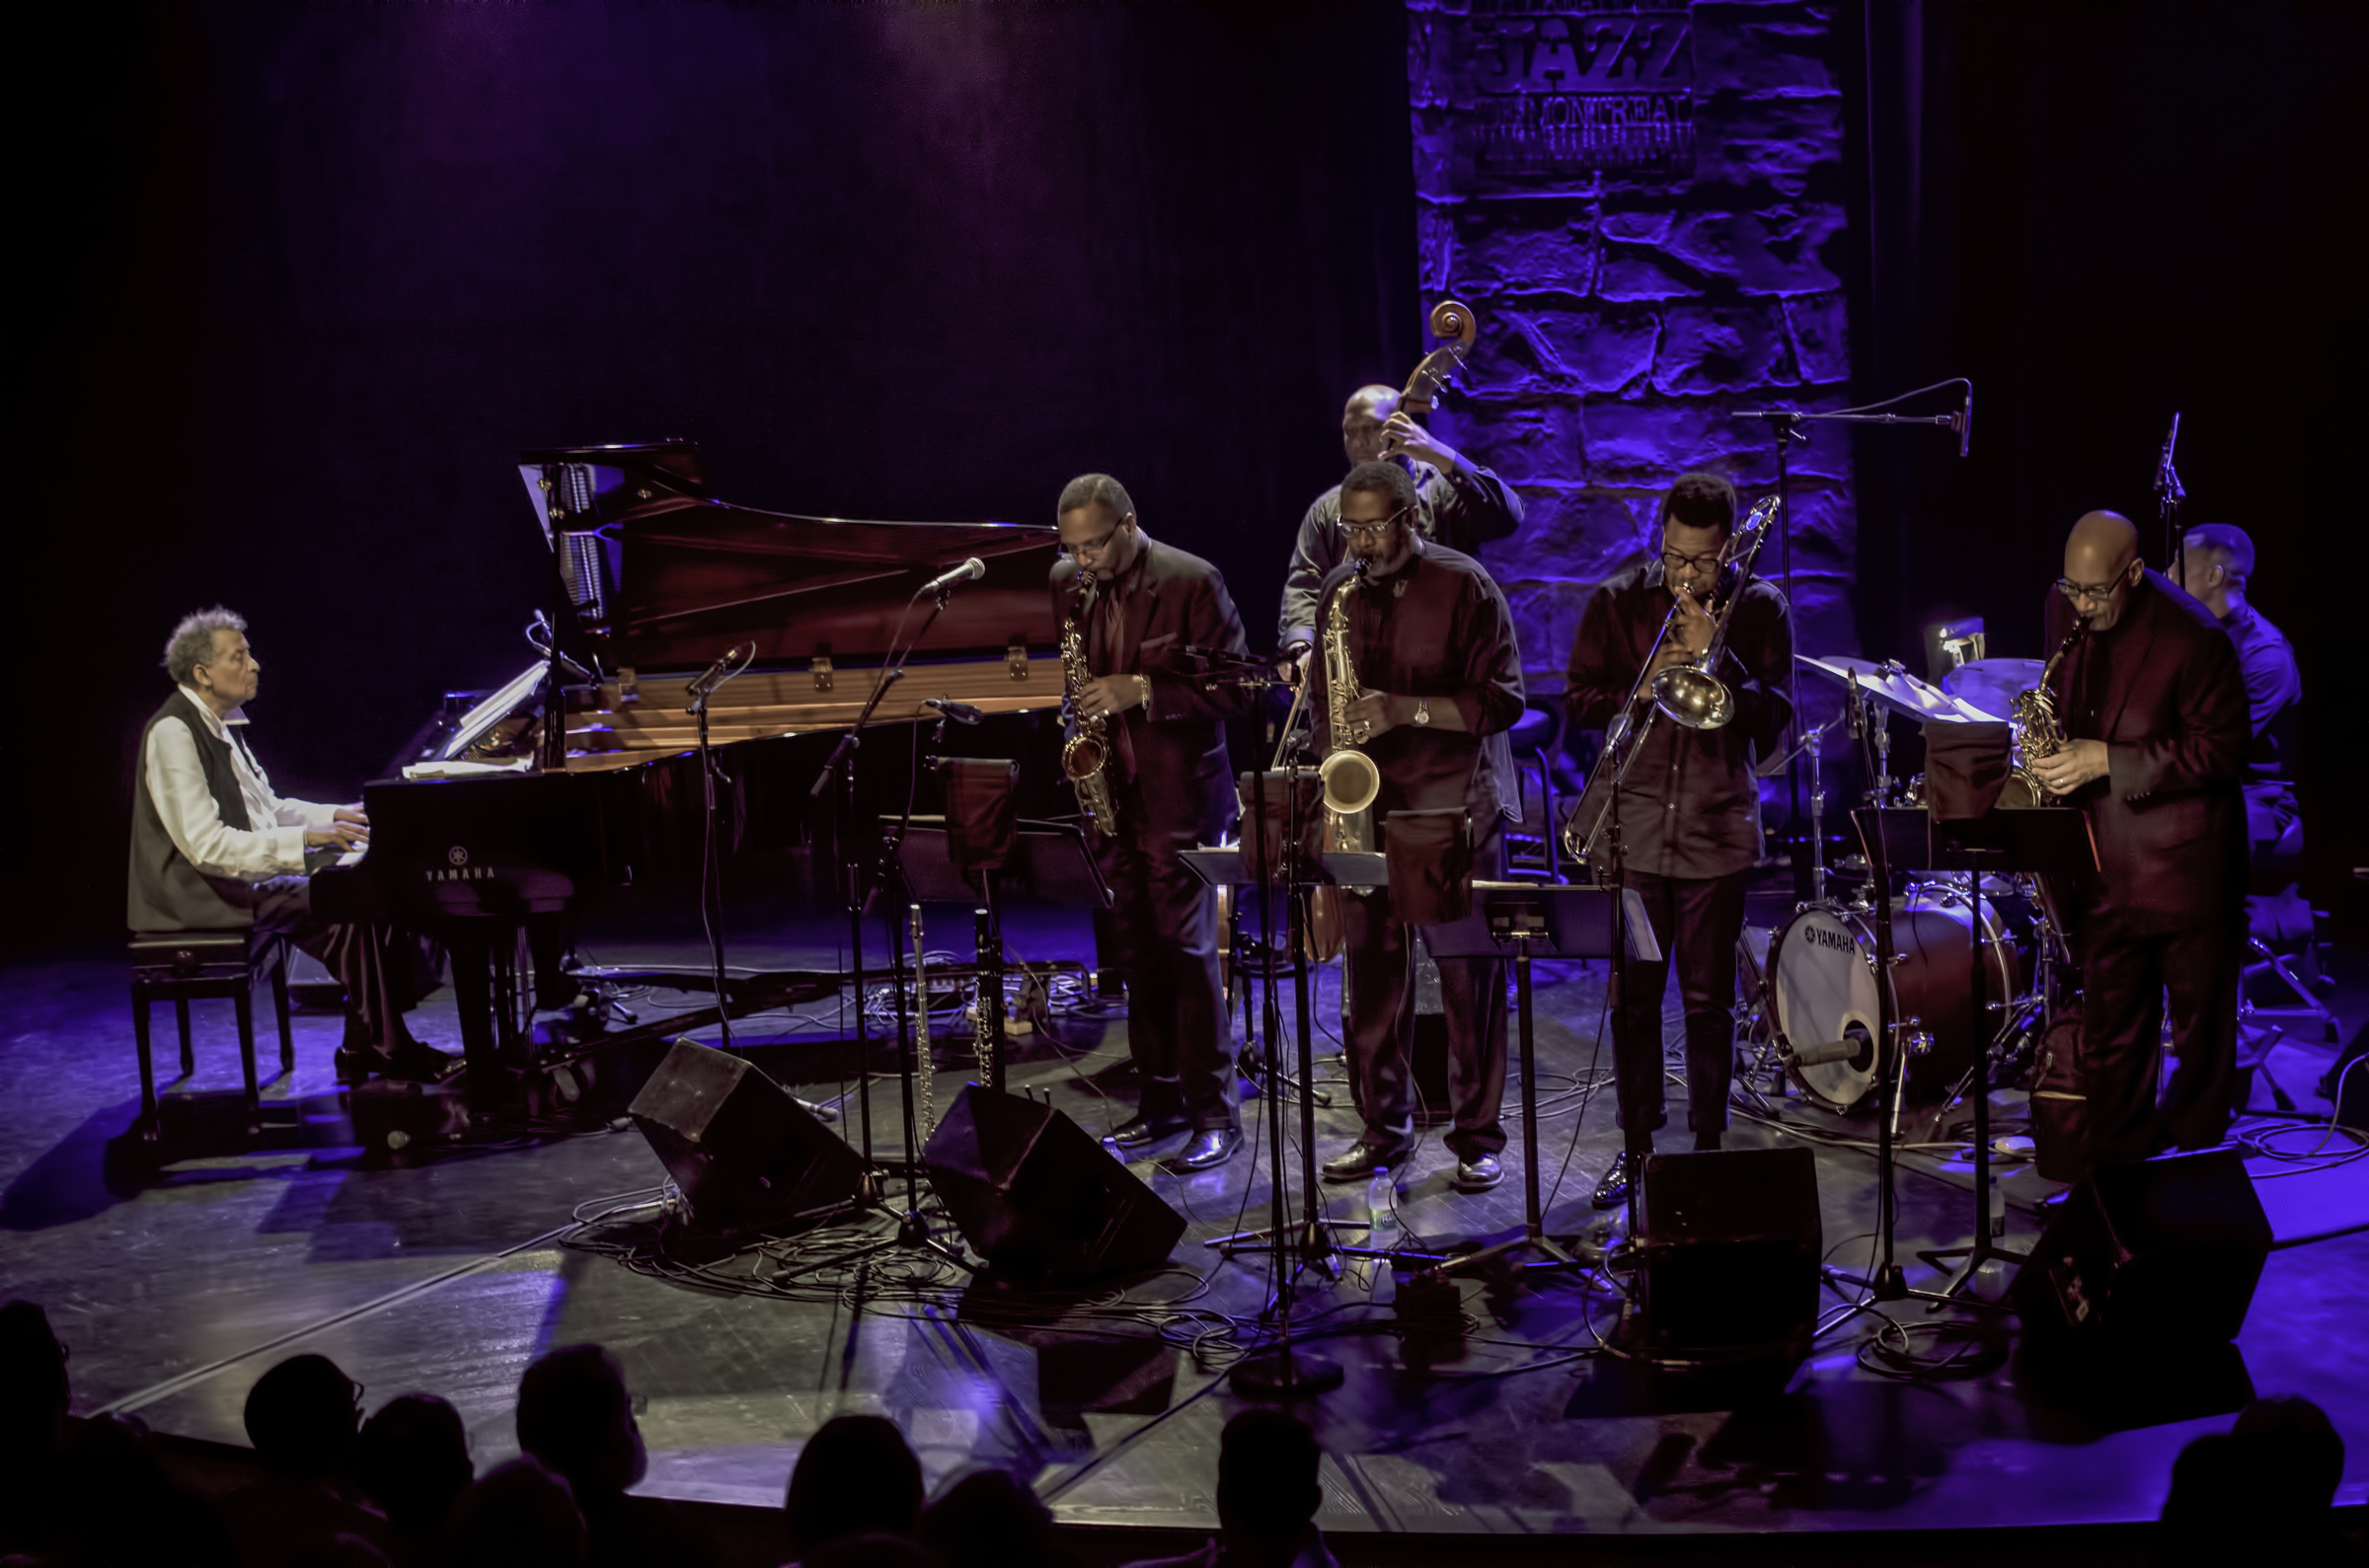 Abdullah Ibrahim, Cleave Guyton, Lance Bryant, Noah Jackson, Andrae Murchison, Marshall McDonald and Will Terrell with Ekaya at the Montreal Jazz Festival 2015